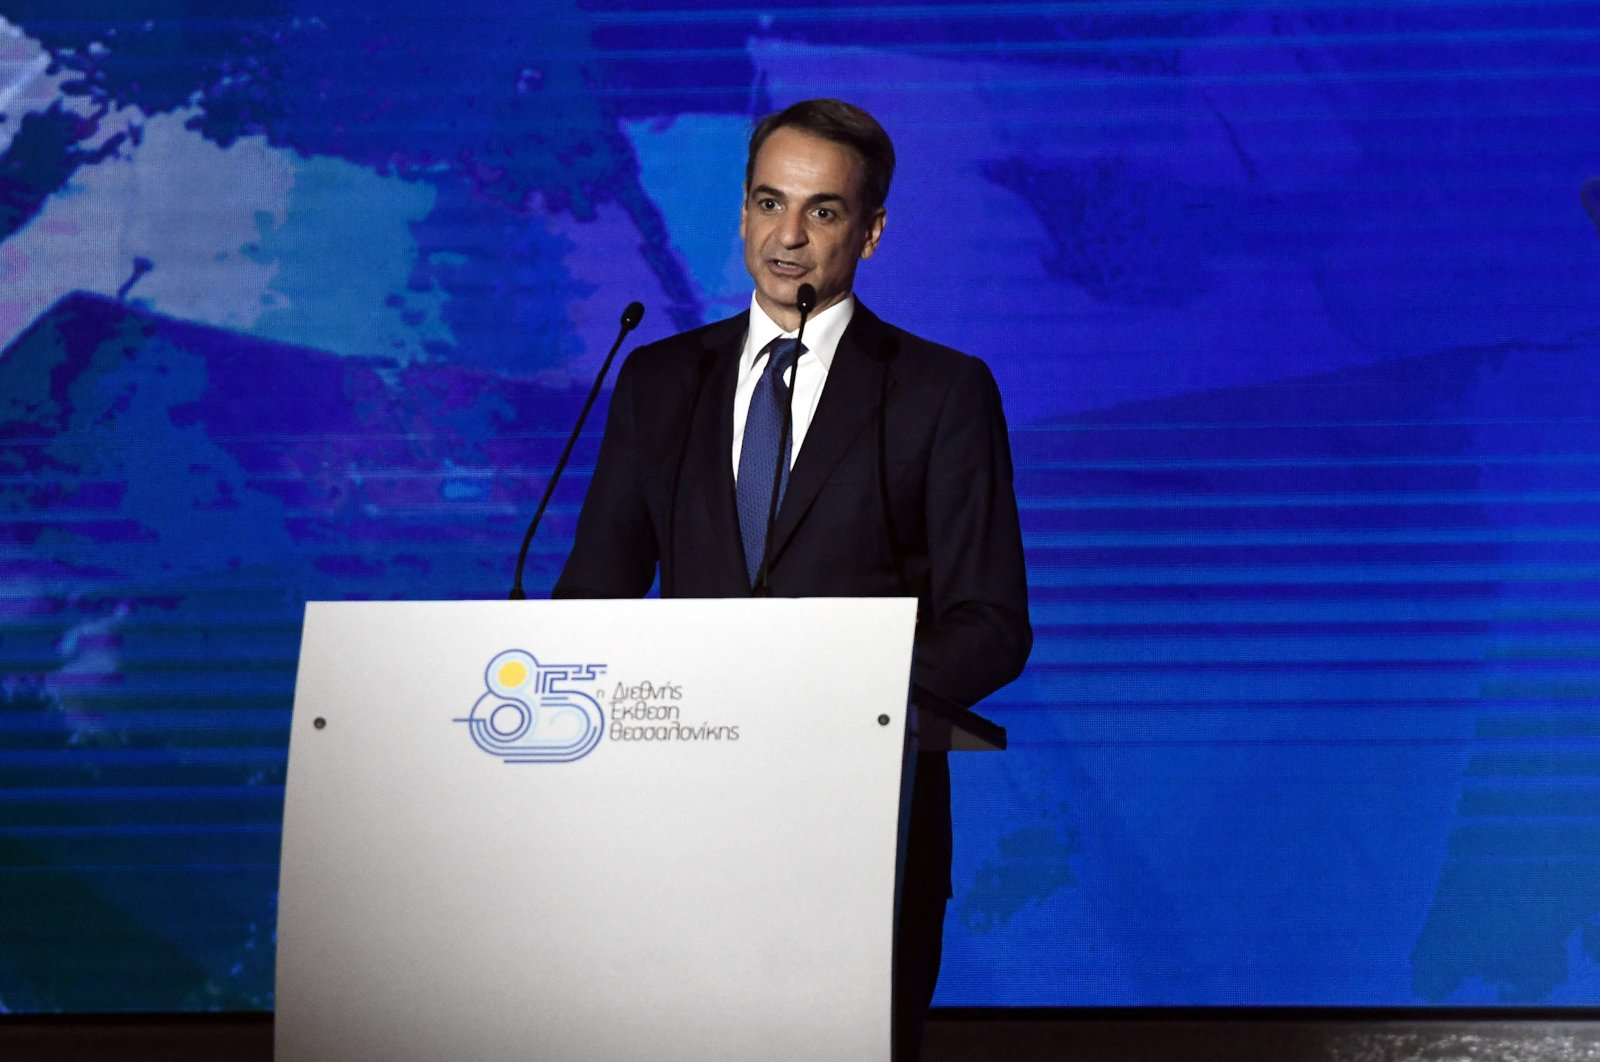 Greek Prime Minister Kyriakos Mitsotakis addresses representatives of local chambers, unions and administrations during the opening of the 85th Thessaloniki International Fair (TIF) in Thessaloniki, northern Greece, on Sept. 11, 2021. (AFP Photo)